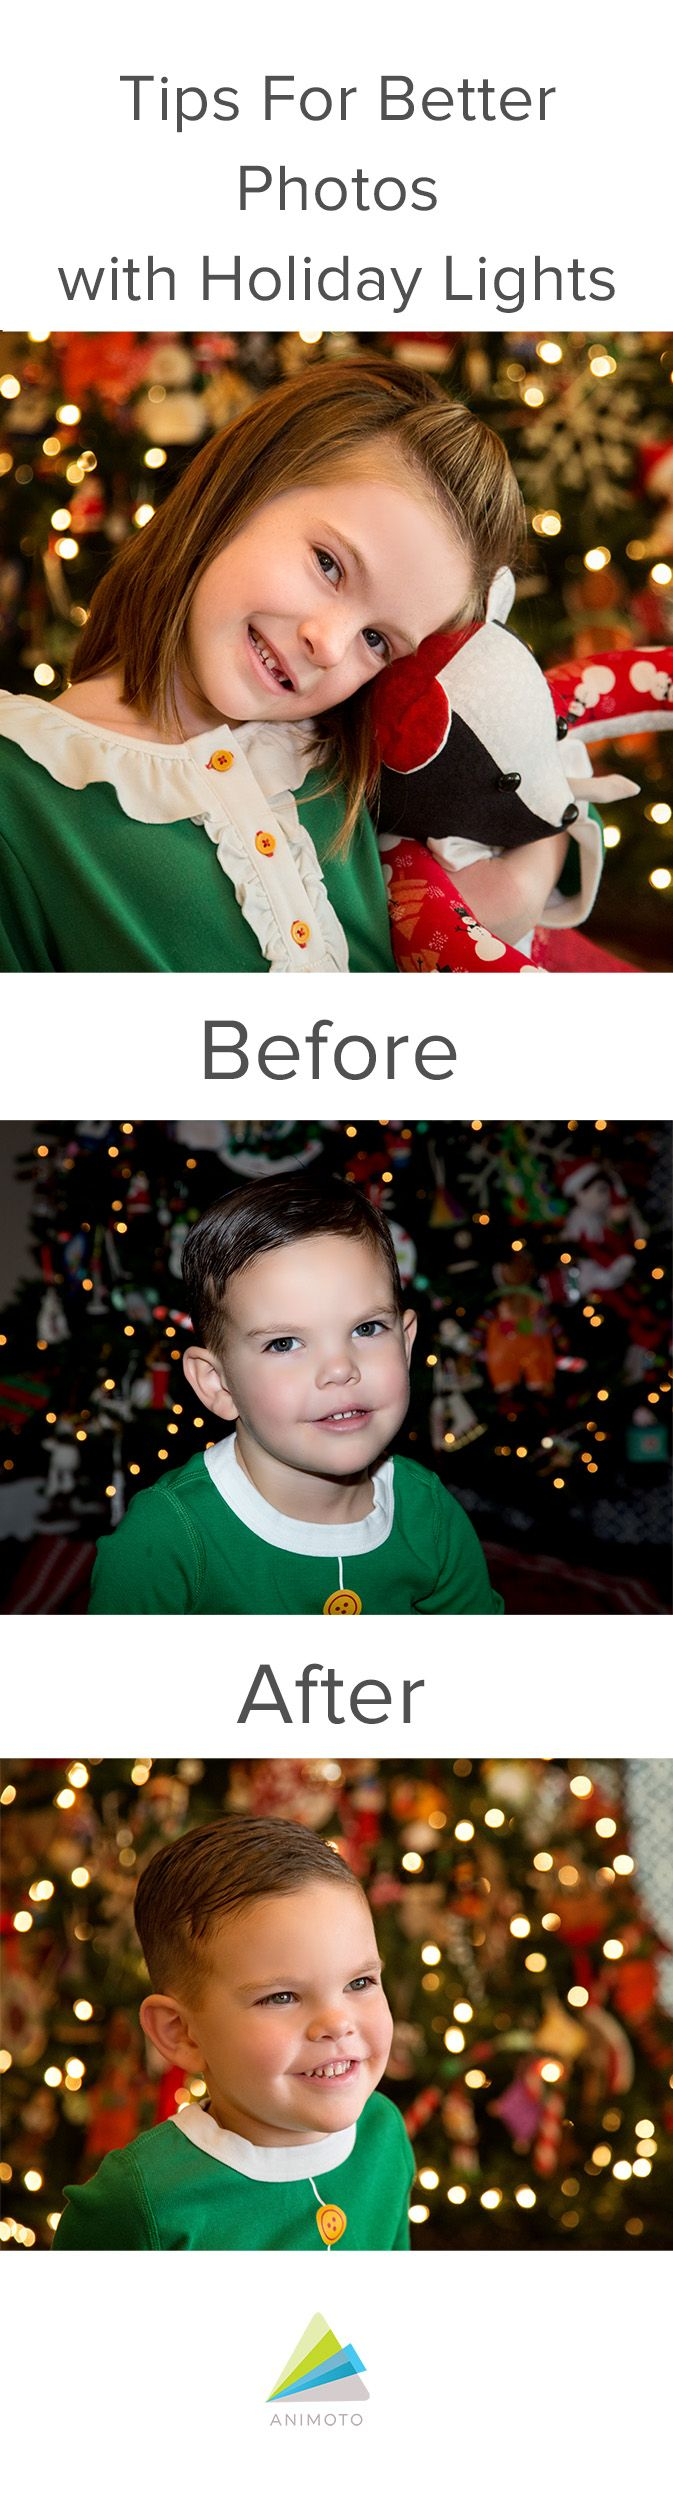 Tutorial on how to take photographs with holiday lights.